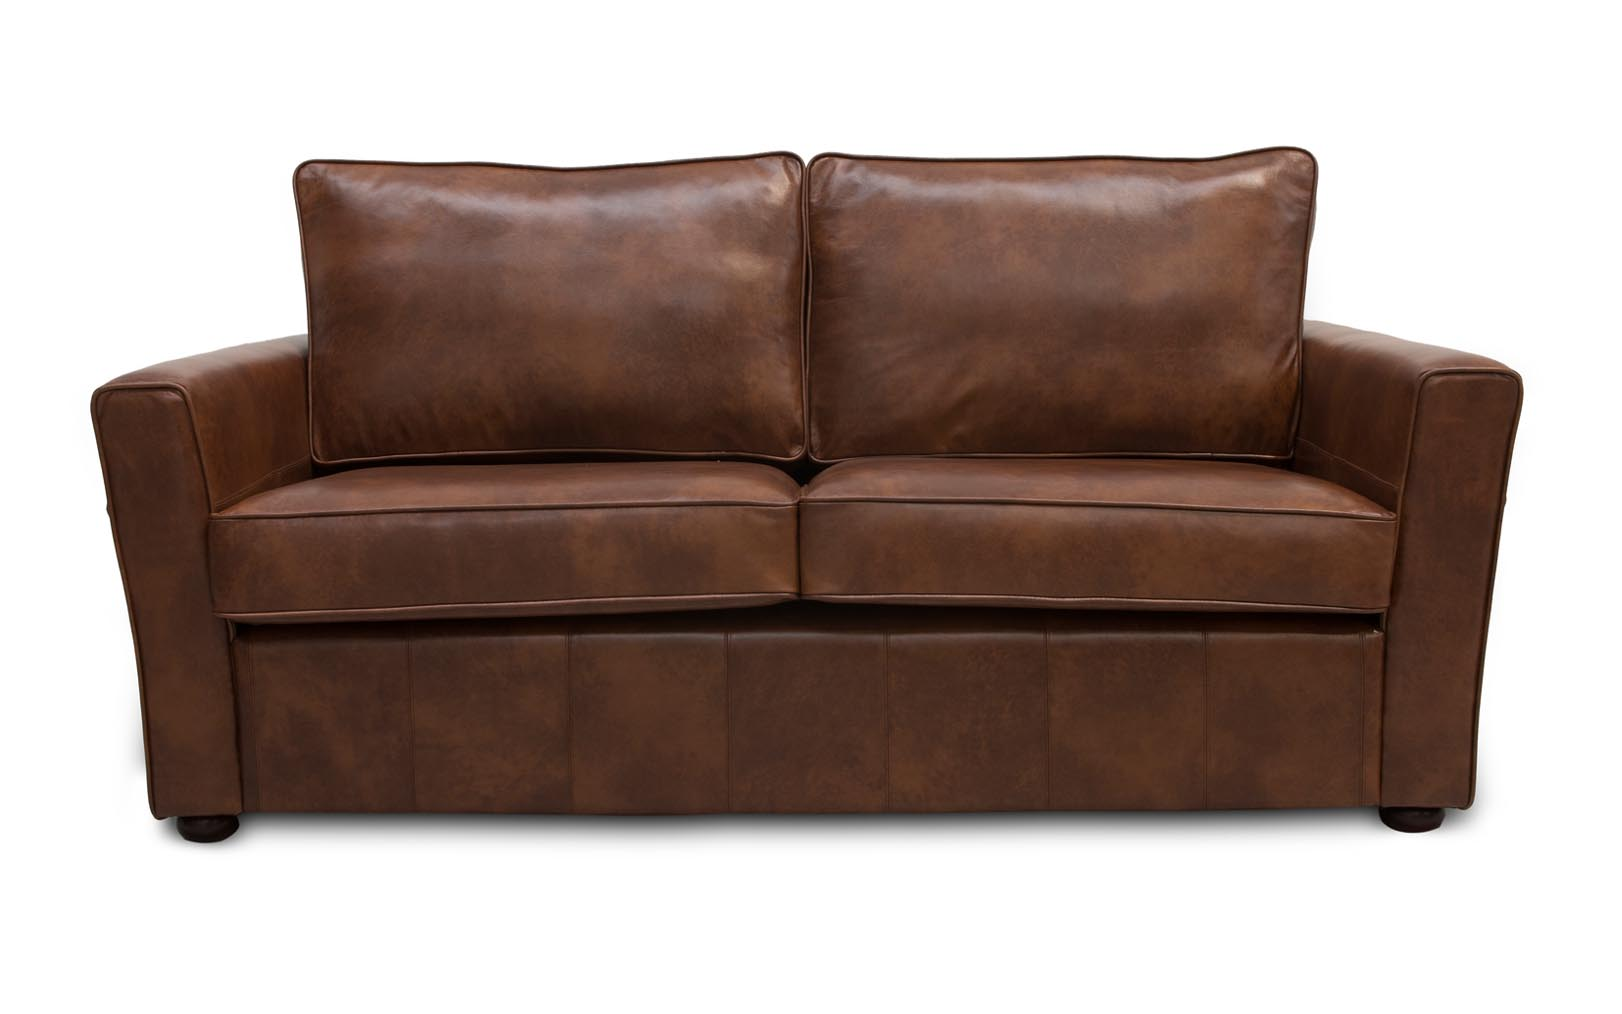 the leather sofa company uk diamond park ave eastern king bed in desert sand longford contemporary sofas made your